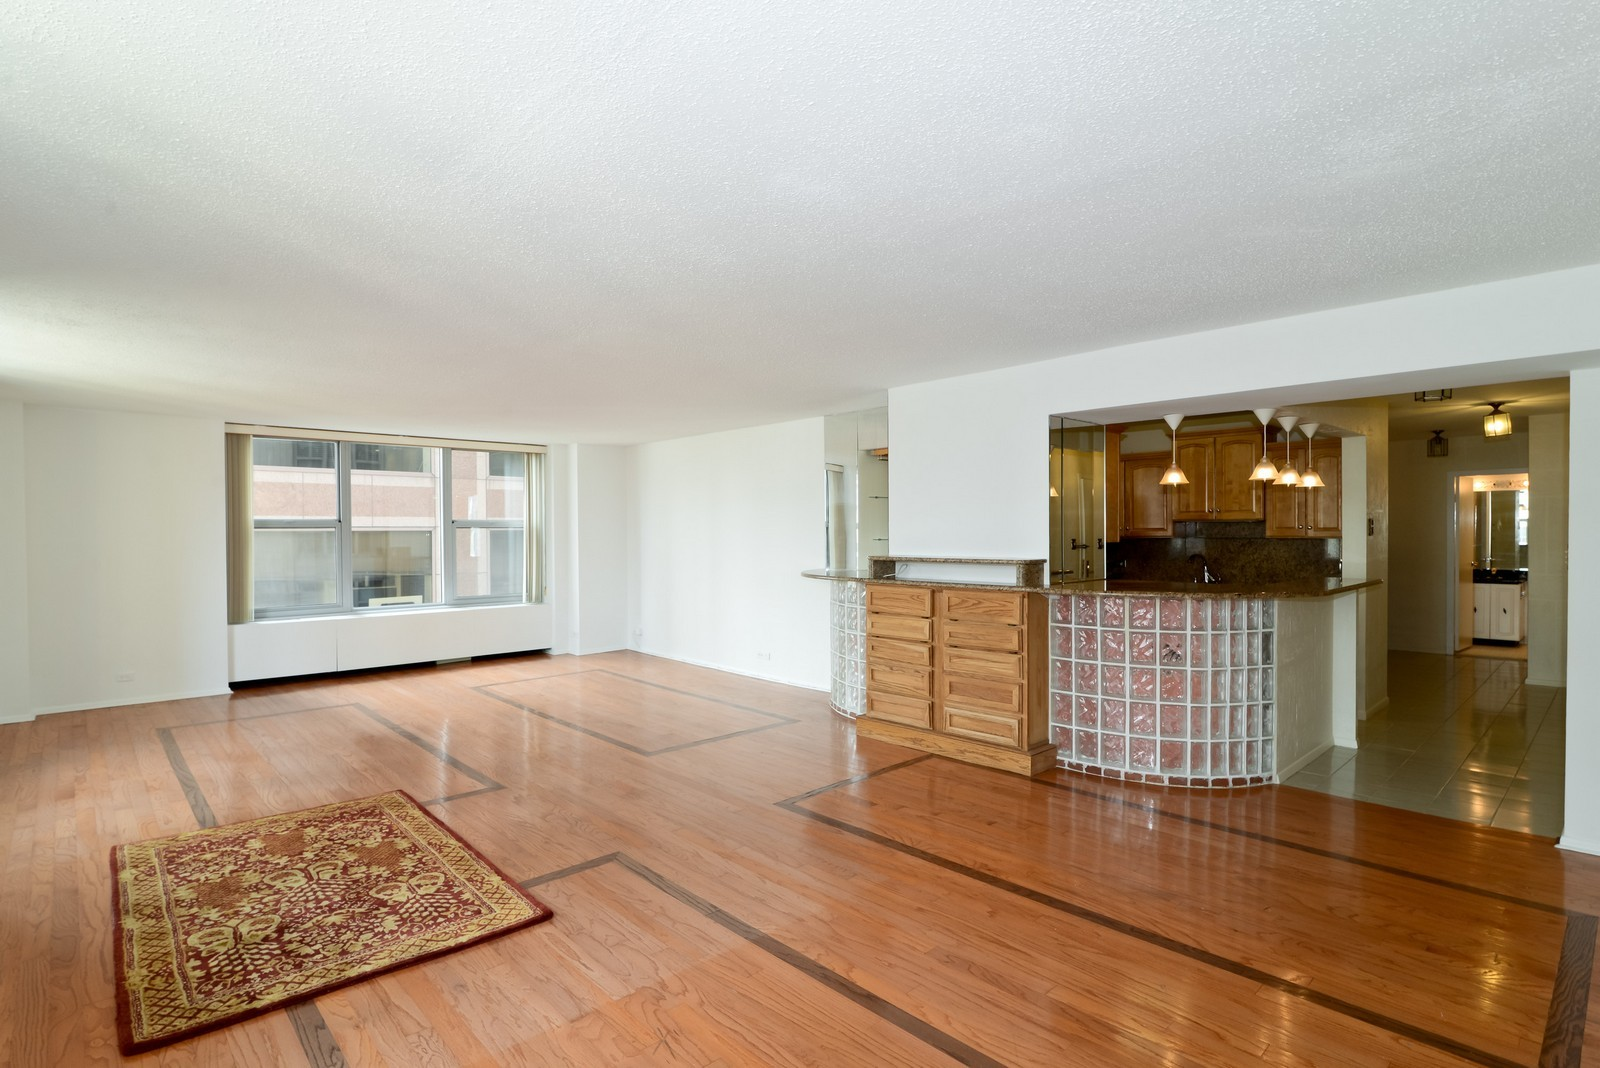 Real Estate Photography - 777 N Michigan Ave, Unit 2200, Chicago, IL, 60611 - Kitchen / Living Room